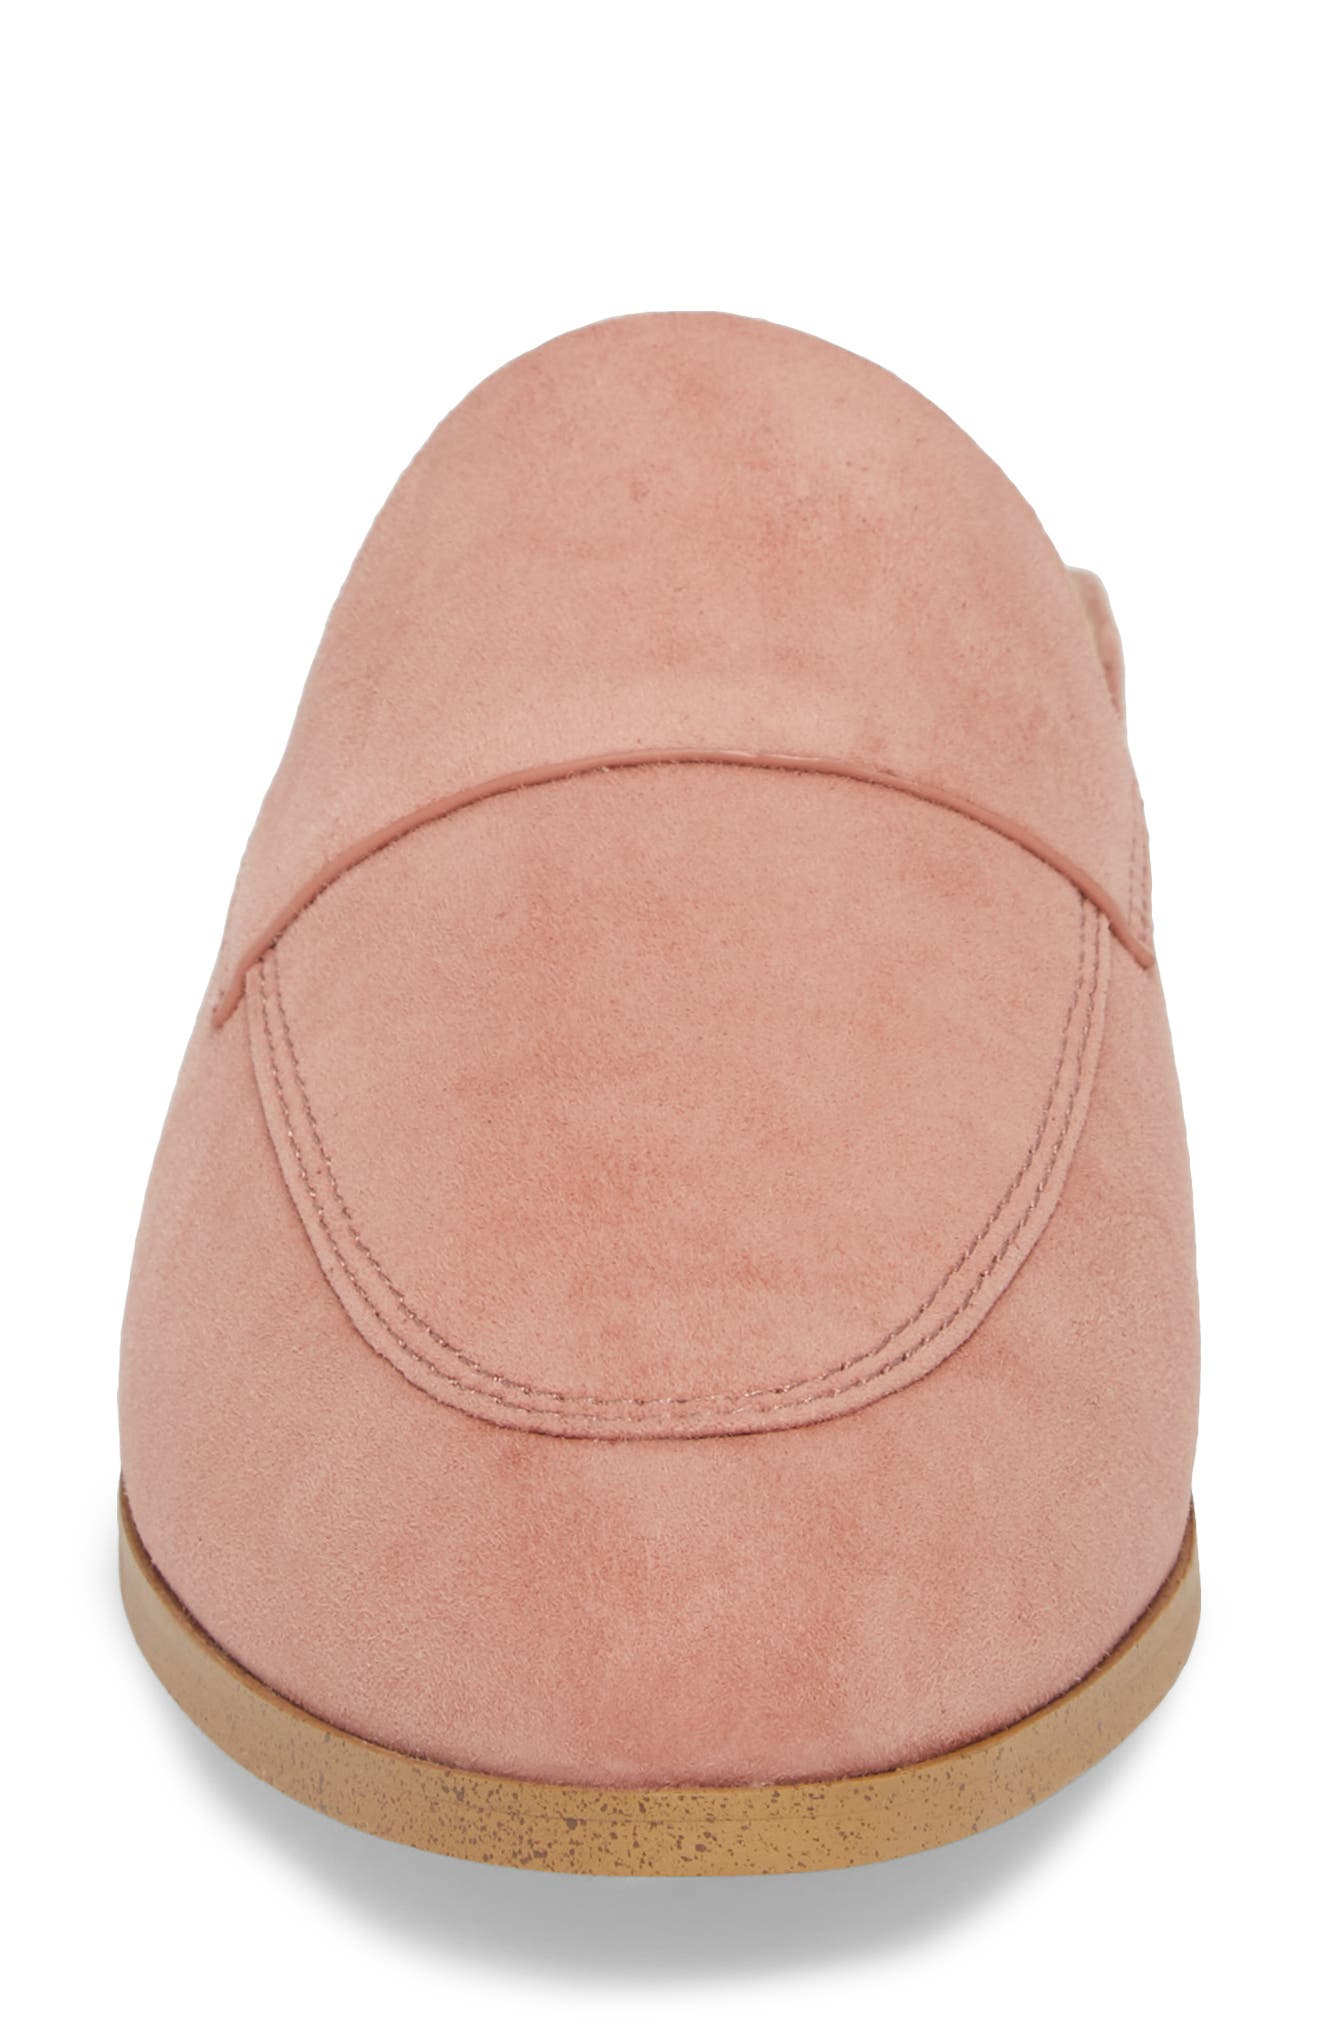 Nima Loafer Mule,                             Alternate thumbnail 4, color,                             ROSE TAUPE SUEDE